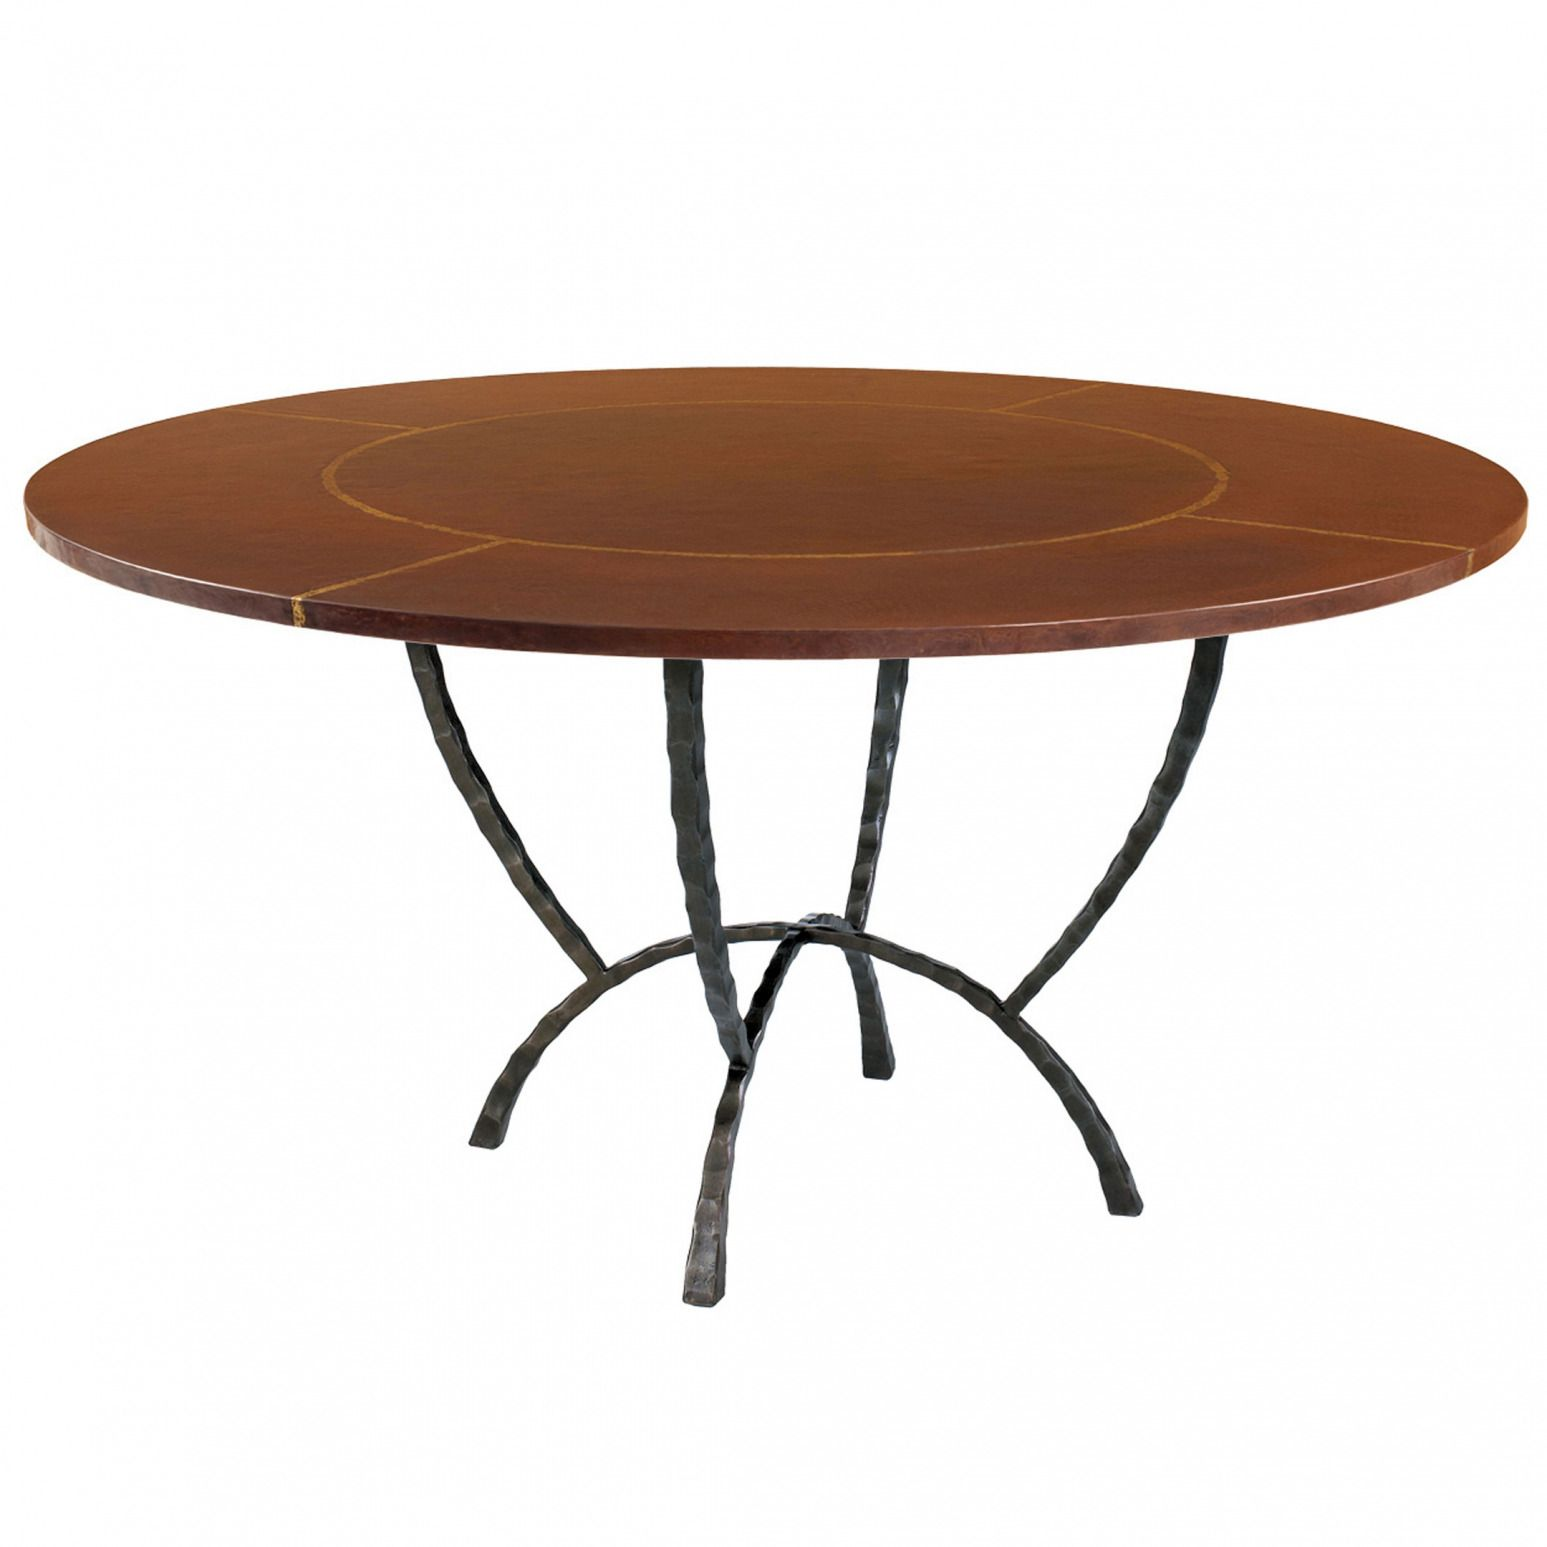 100 60 Inch Round Outdoor Dining Table Americas Best Furniture Check More At Http